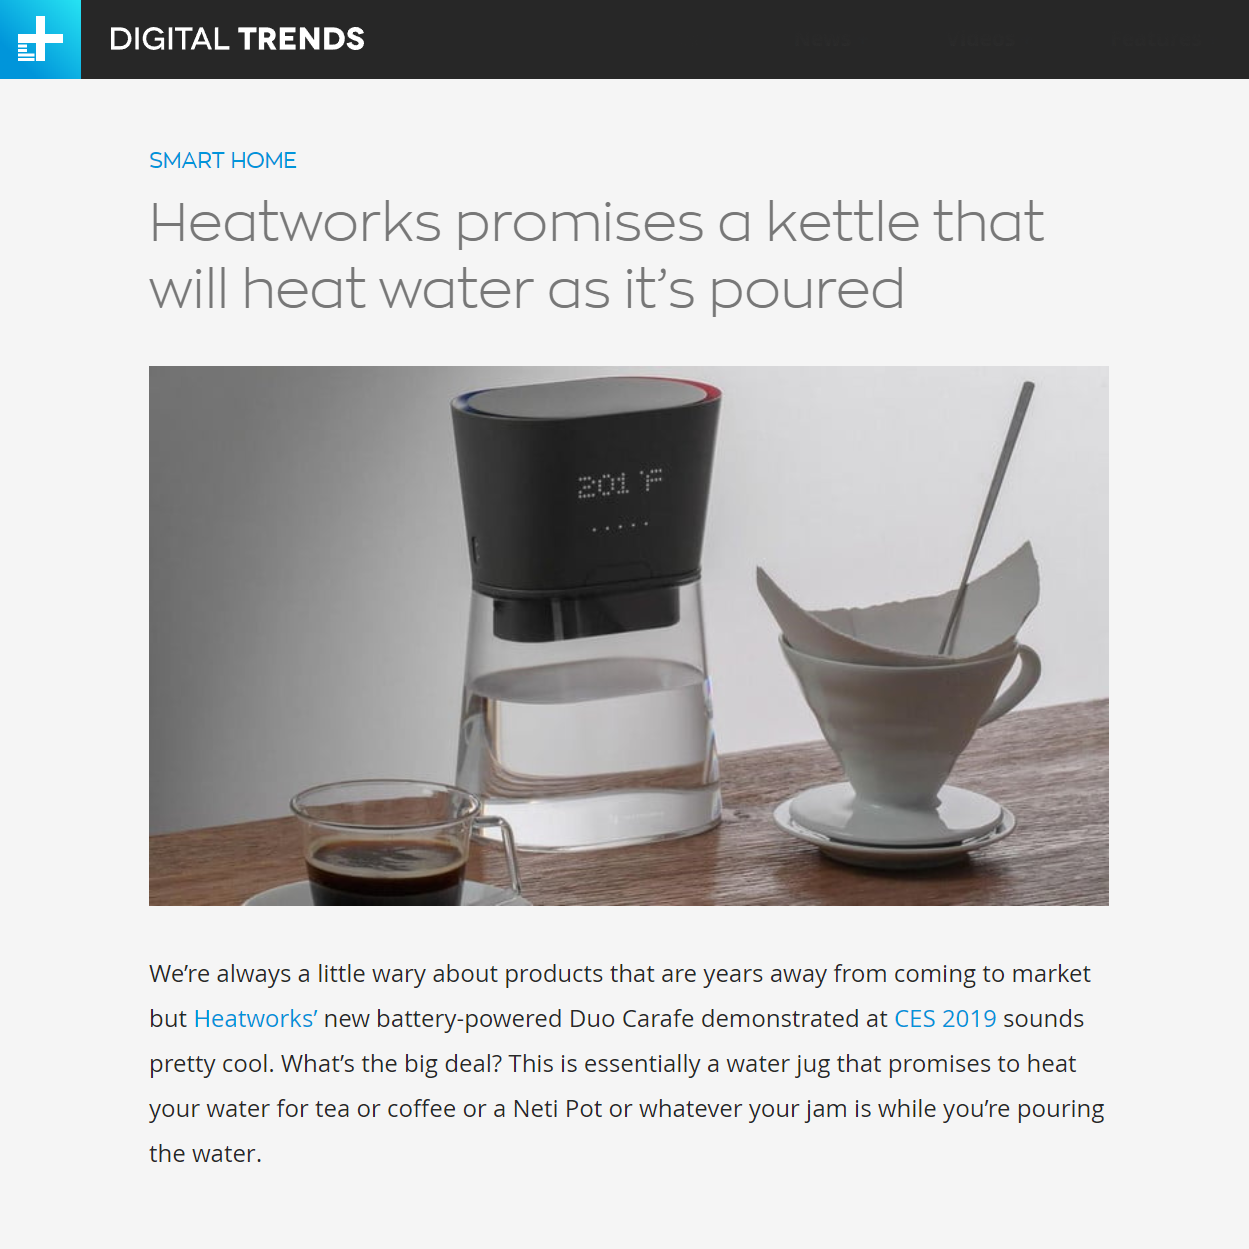 screencapture-digitaltrends-home-heatworks-duo-carafe-ces-2019-2-2019-02-24-11_25_59.png